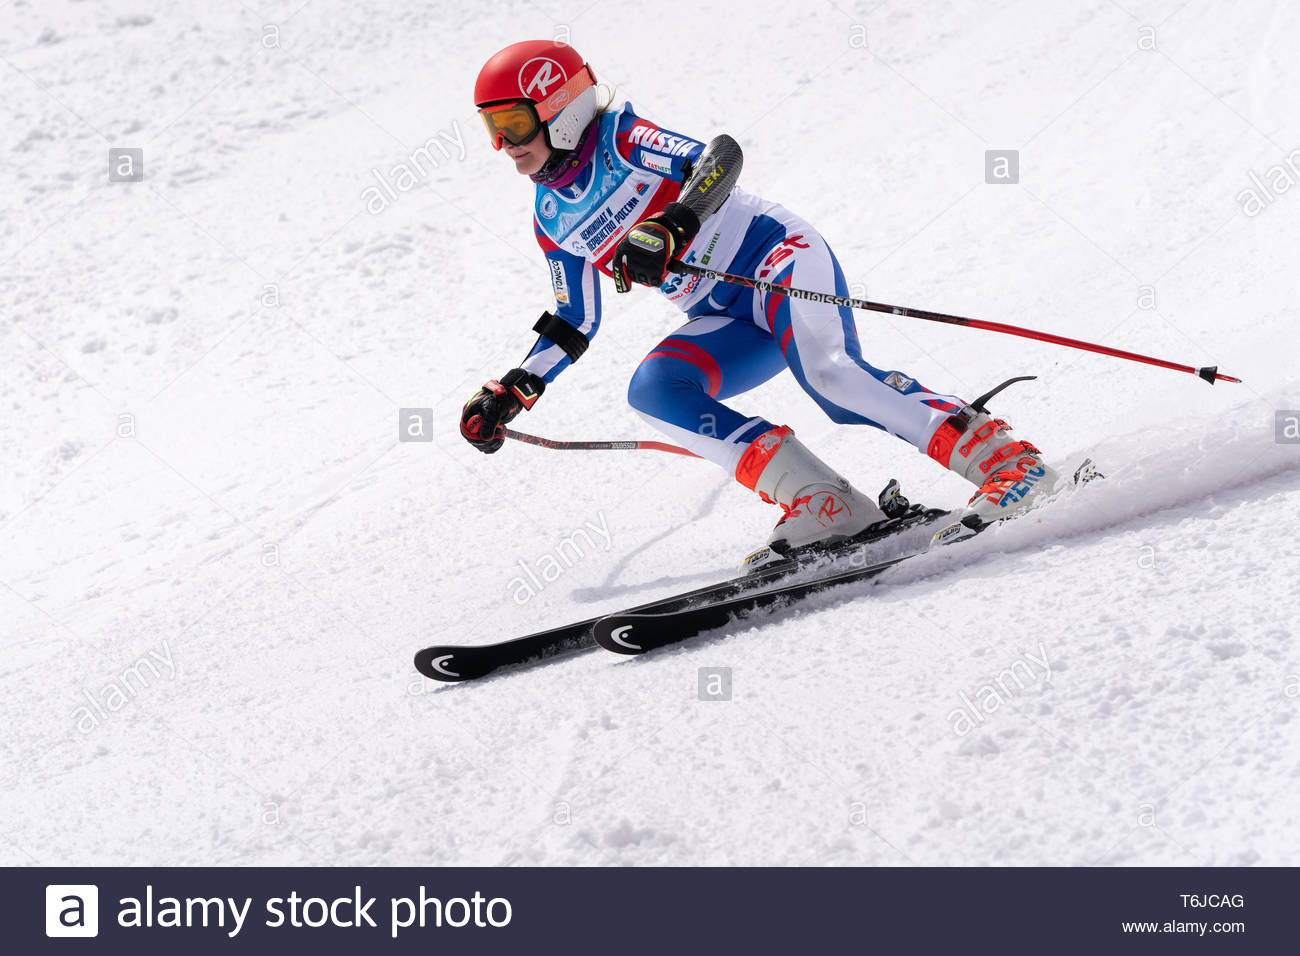 KAMCHATKA PENINSULA, RUSSIAN FEDERATION - APRIL 1, 2019: Mountain skier Arkhipova Sofya (Sverdlovsk Region) skiing down snowy mountain slope. Russian  - Stock Image